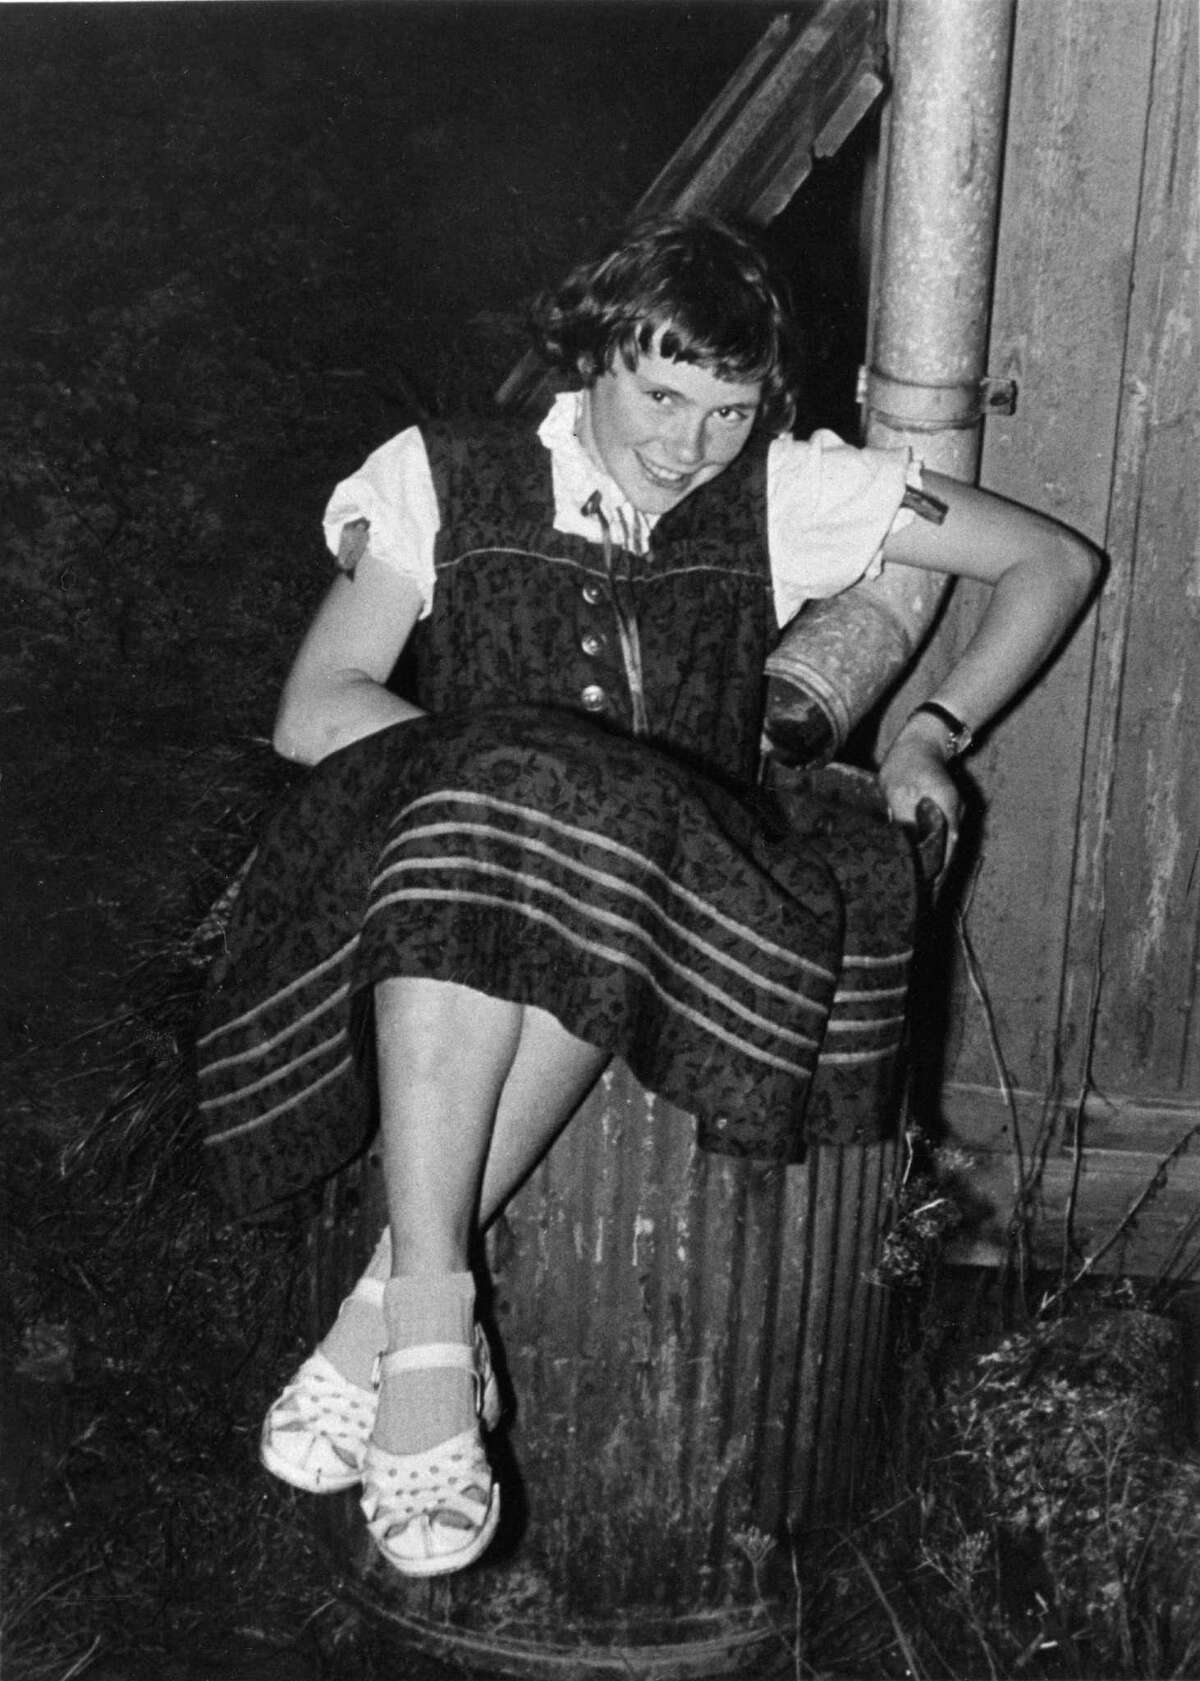 July 1, 1957: Born in Berlin on Nov. 5, 1940, Sommer, an only child, is seen sitting in a rain barrel at the tender age of 16. She and her parents escaped the ravages of World War II by moving to the south of Germany; she later moved to England to work as an au pair and learn English. She now knows seven languages.